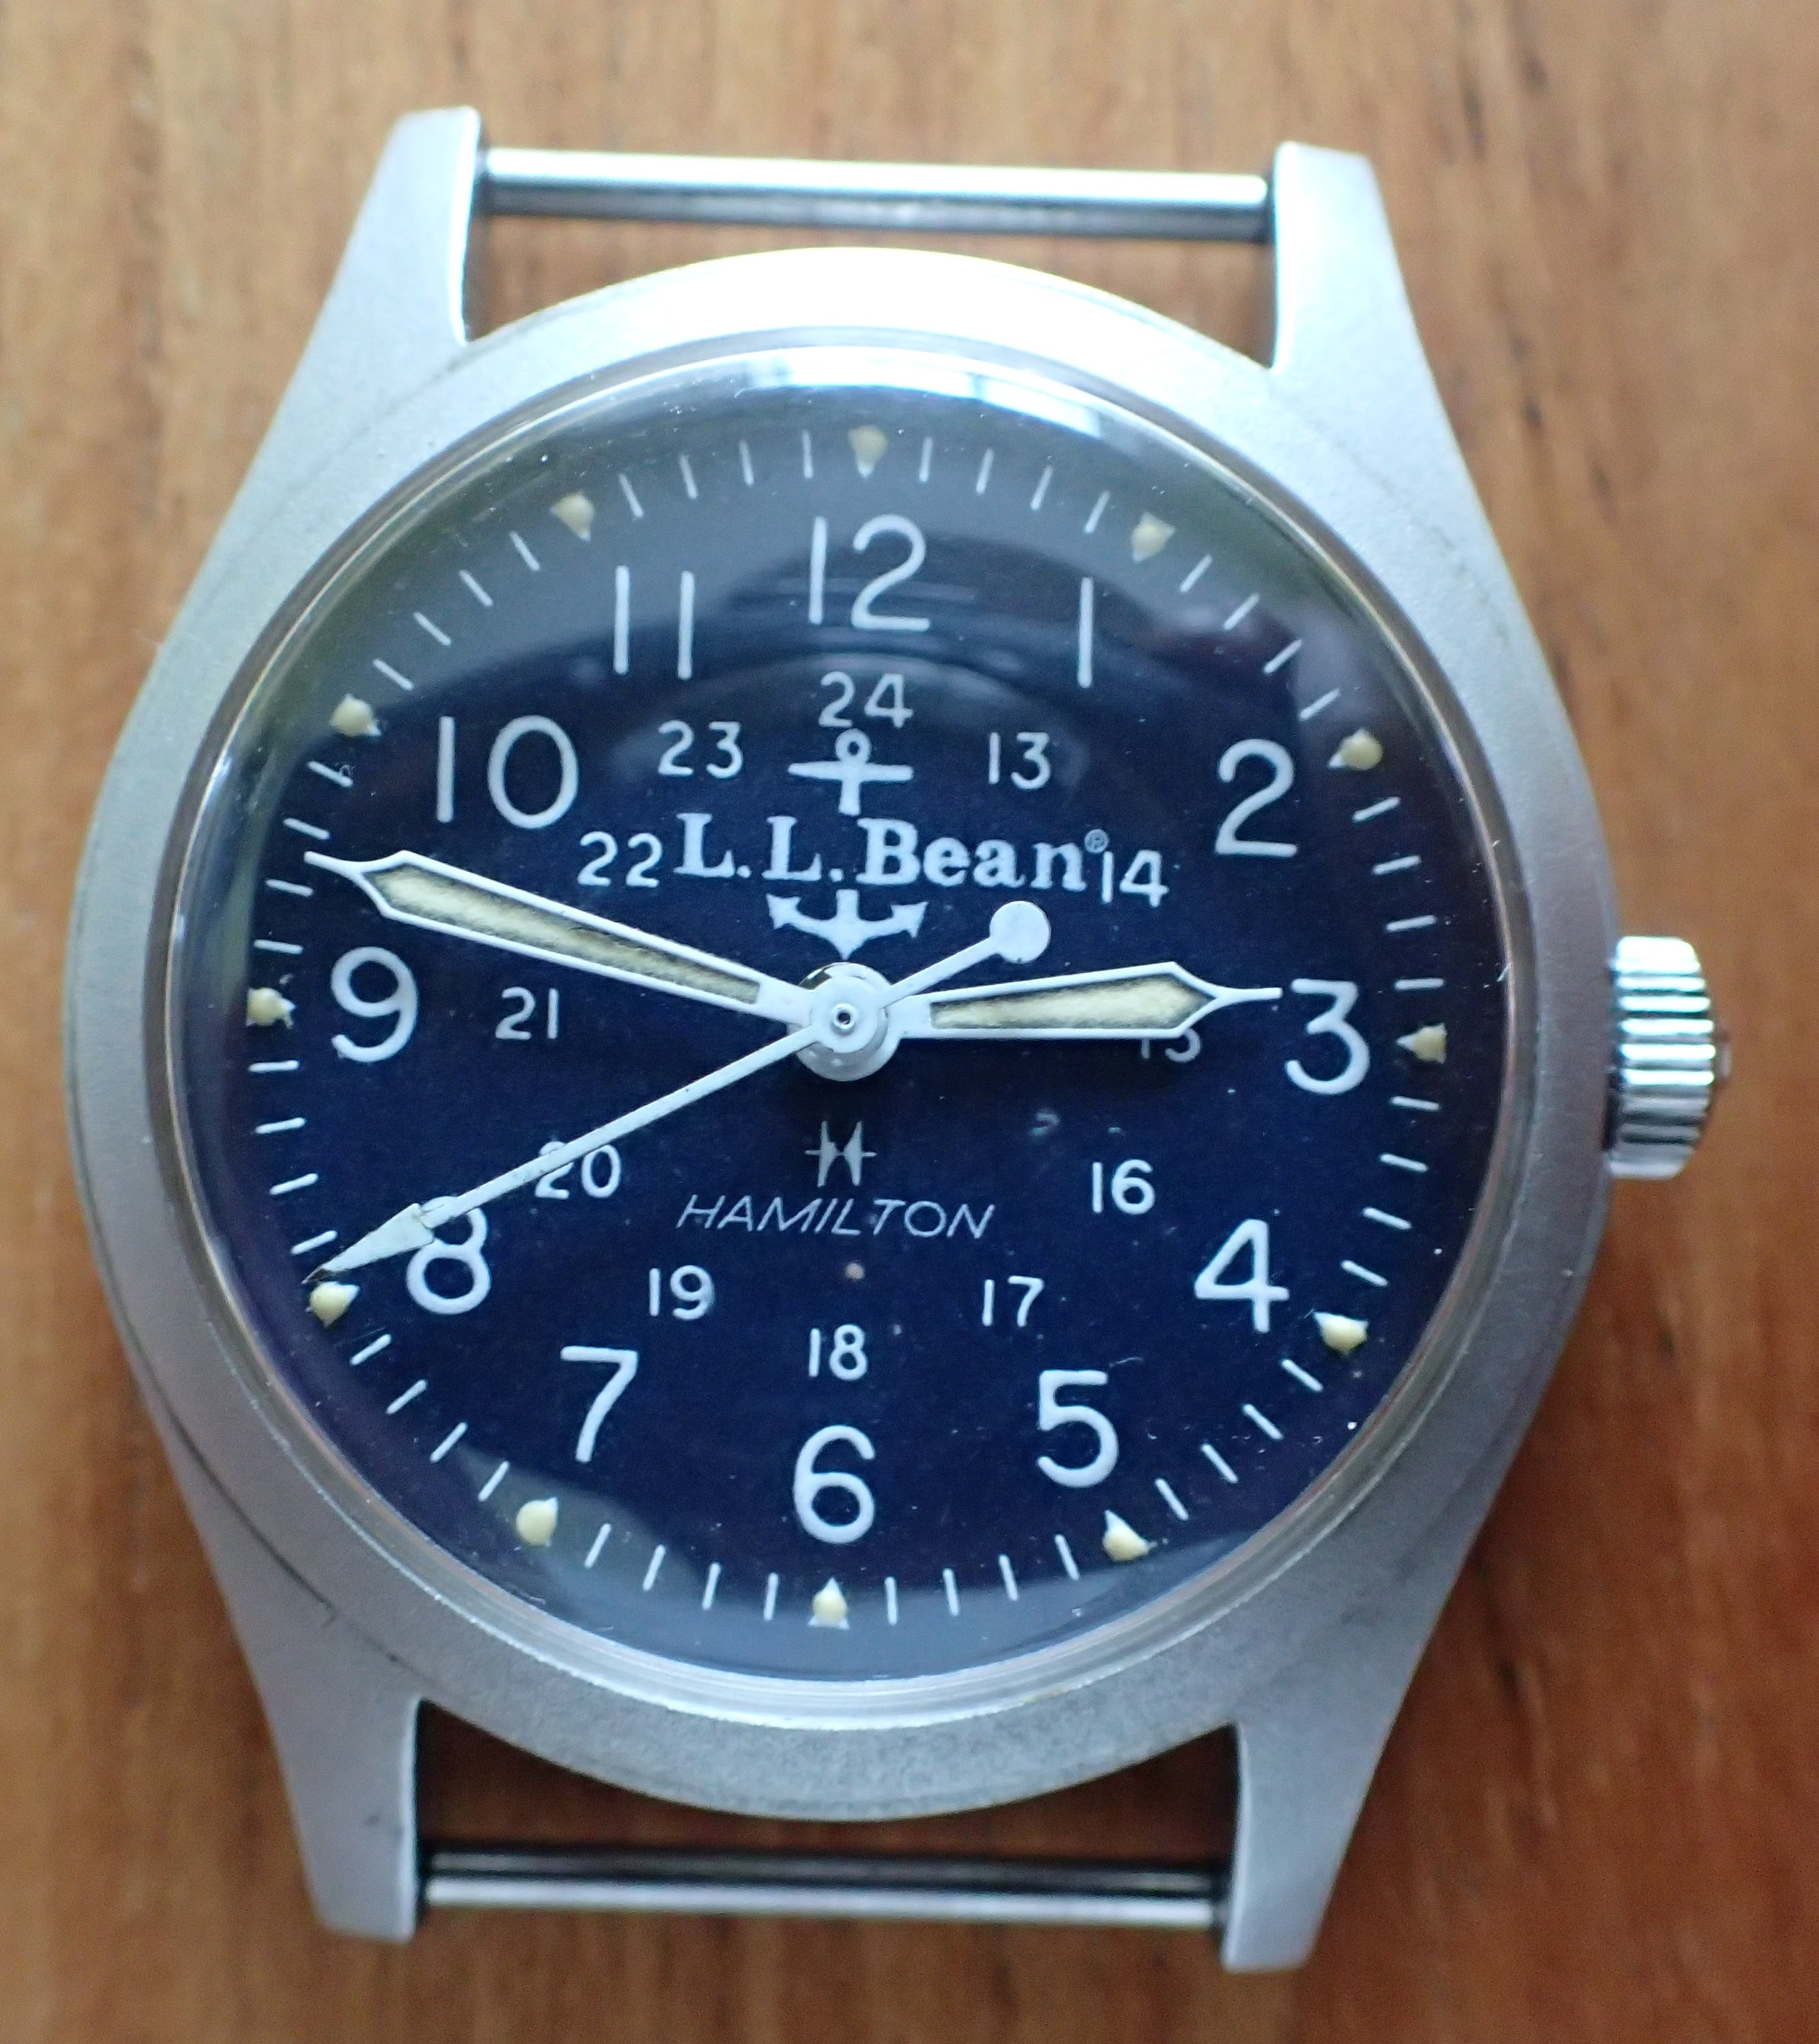 Hamilton/LL Bean Anchor Dial.  This dial is a beautiful navy blue color.